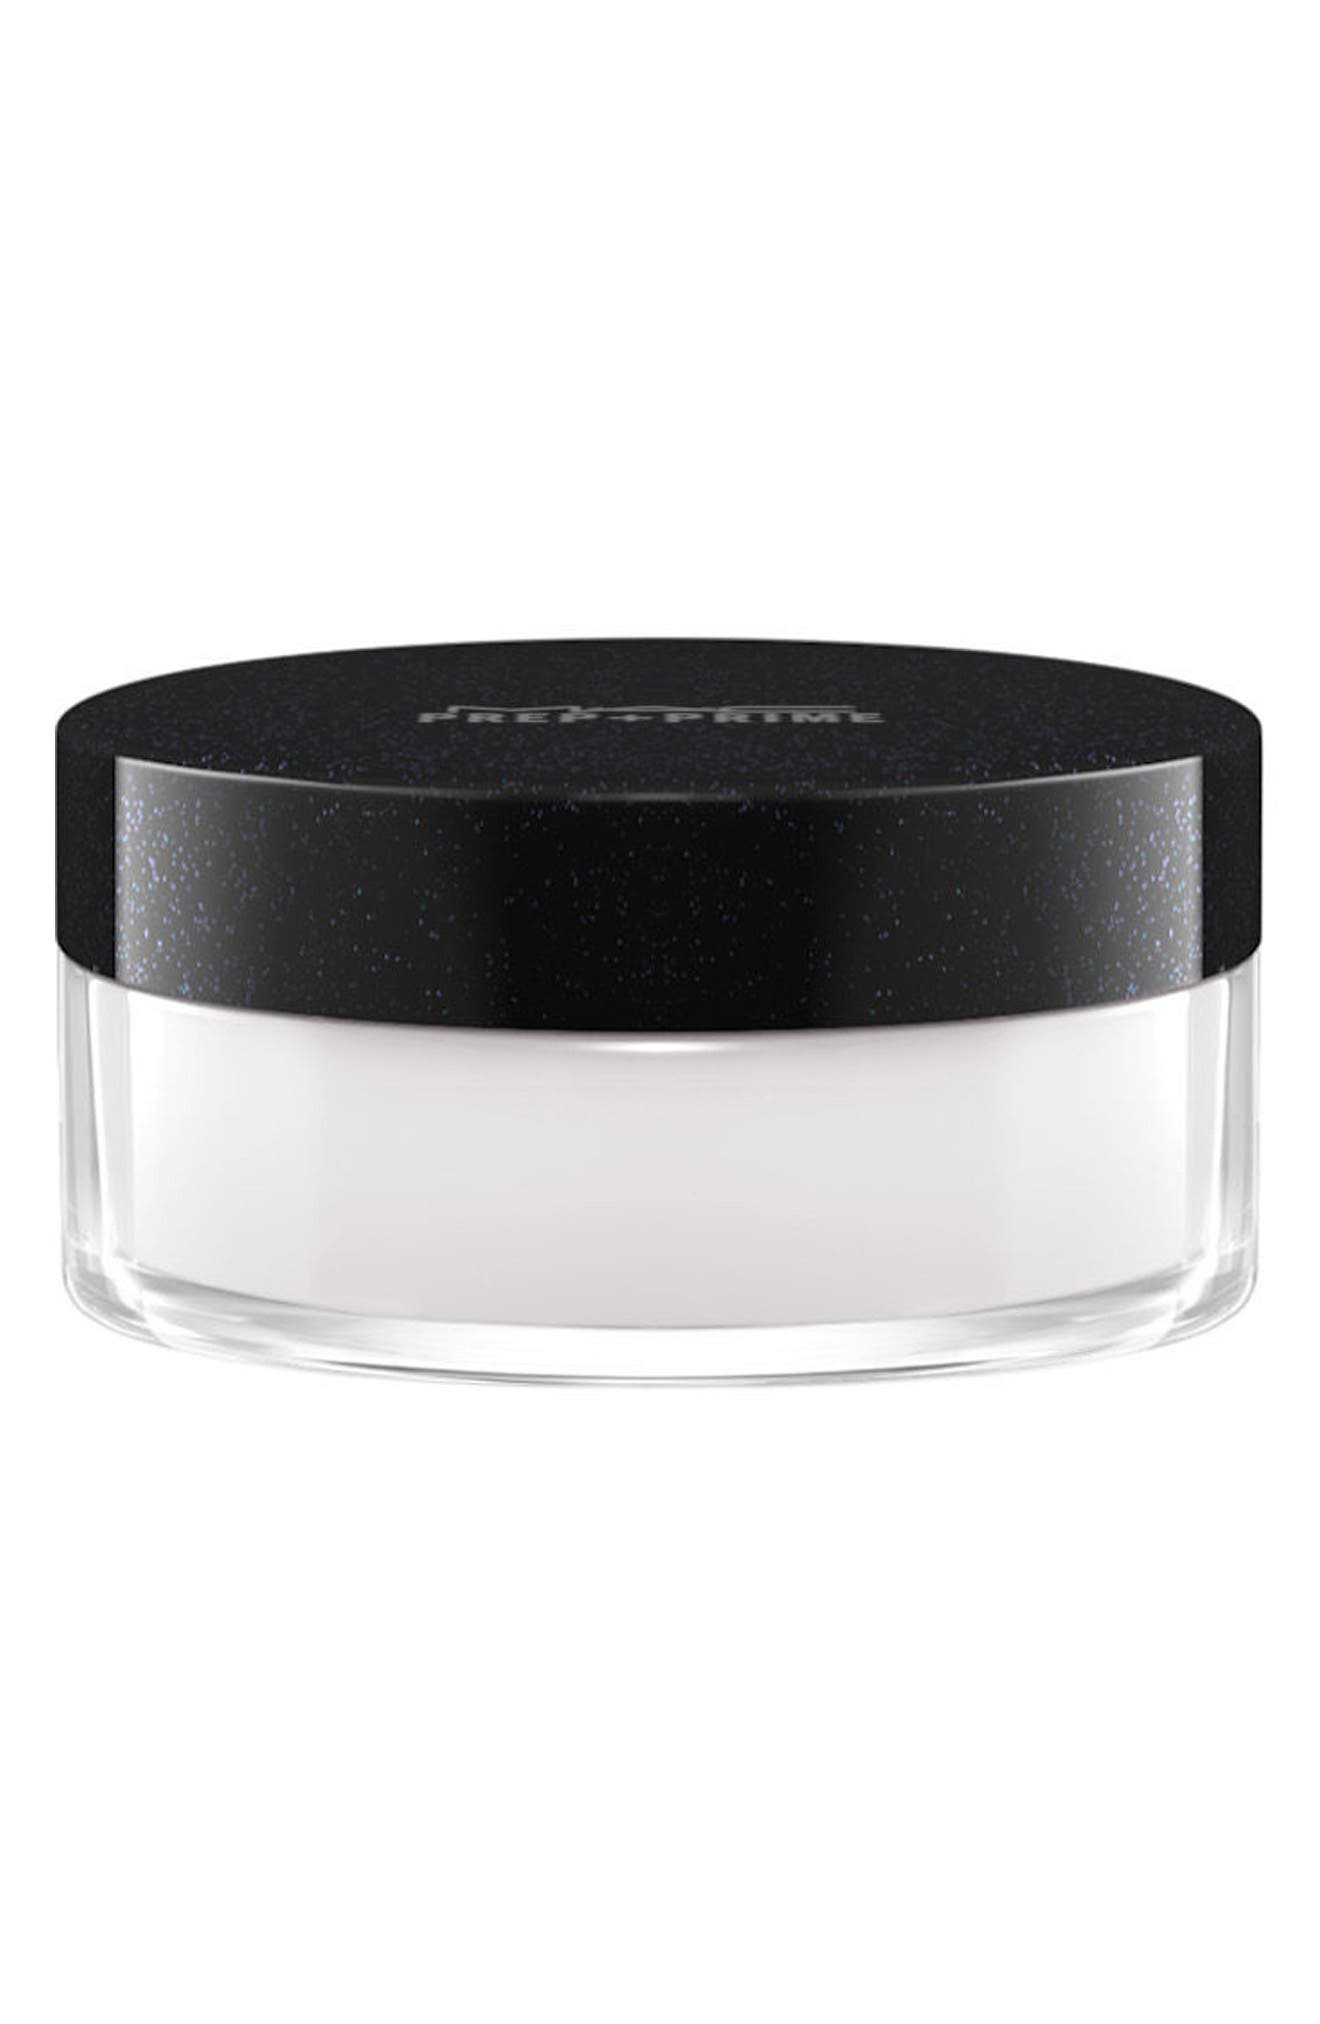 mac transparent finishing powder